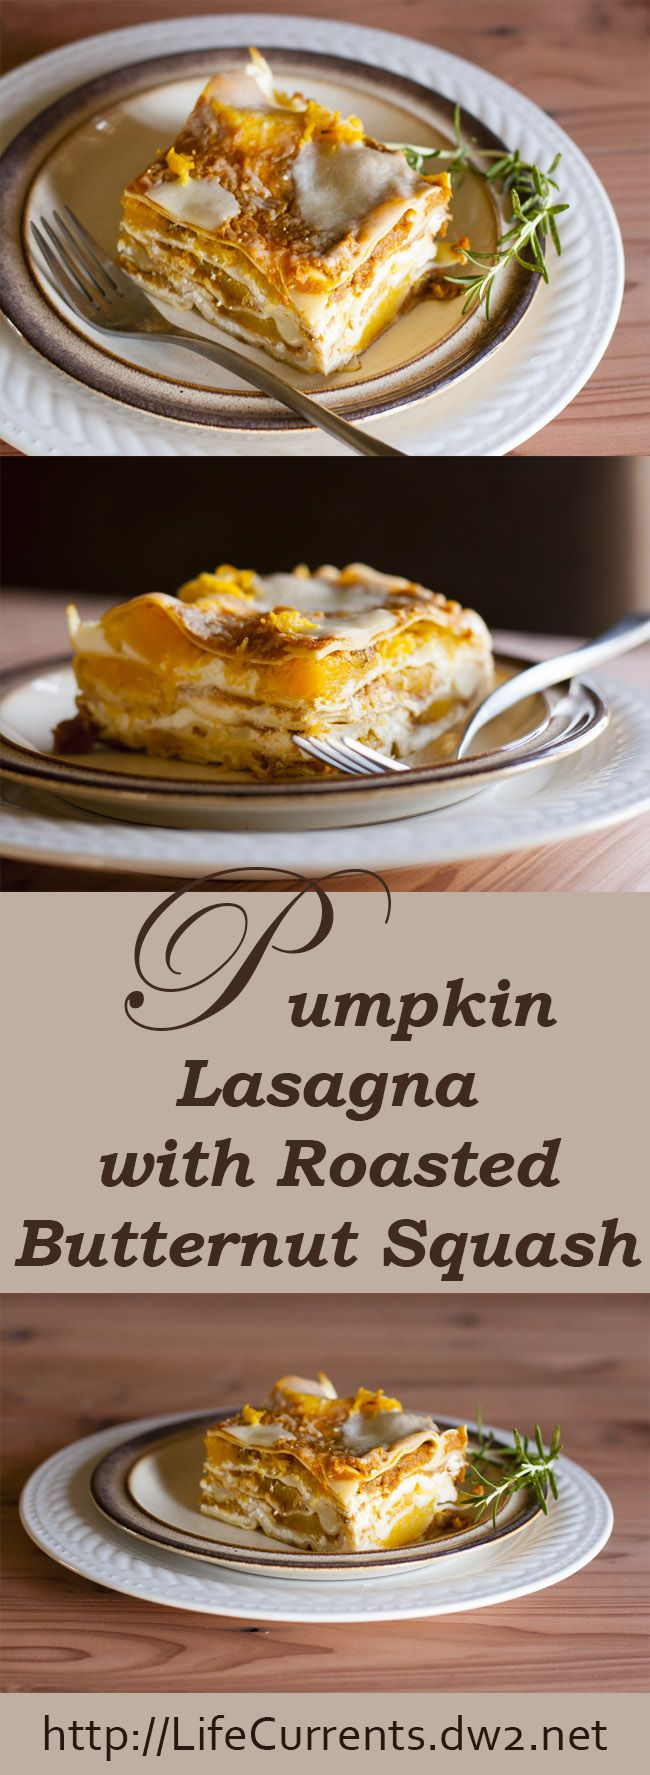 Pumpkin lasagna with roasted butternut squash, ricotta, and fresh mozzarella: a slice of Autumn by Life Currents! You've gotta try this one!